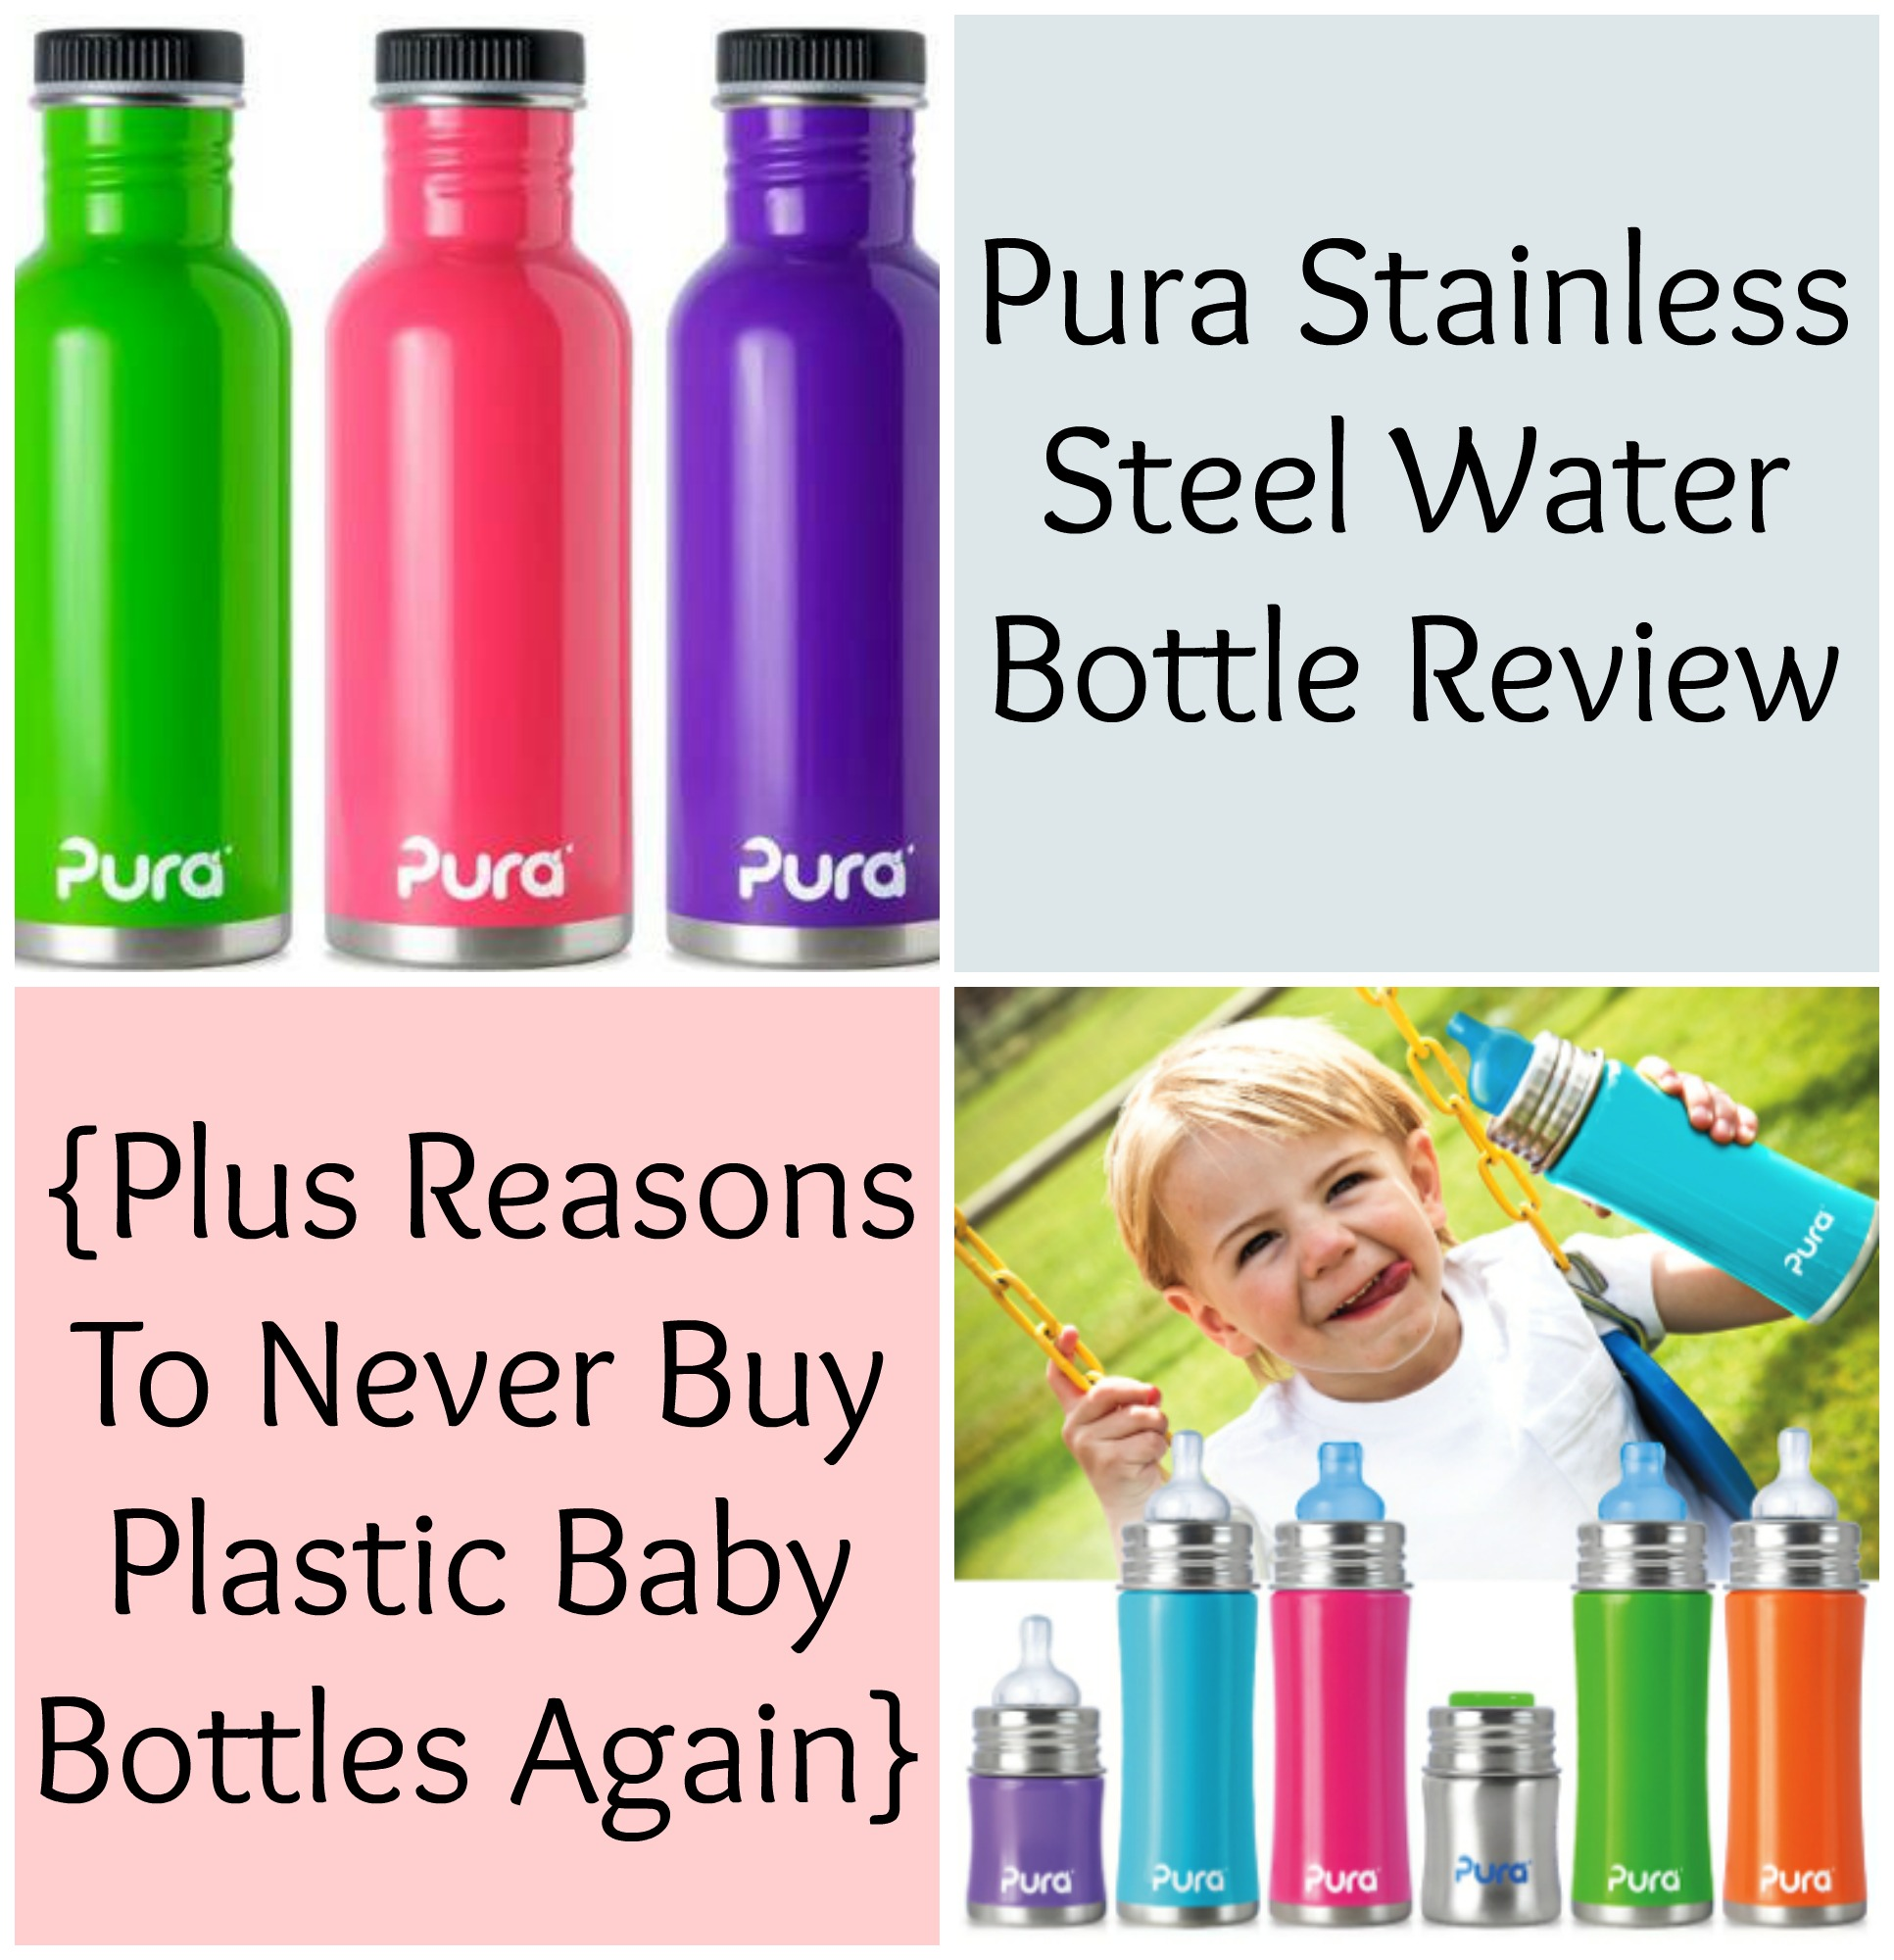 Pura Stainless Steel Water Bottle Review